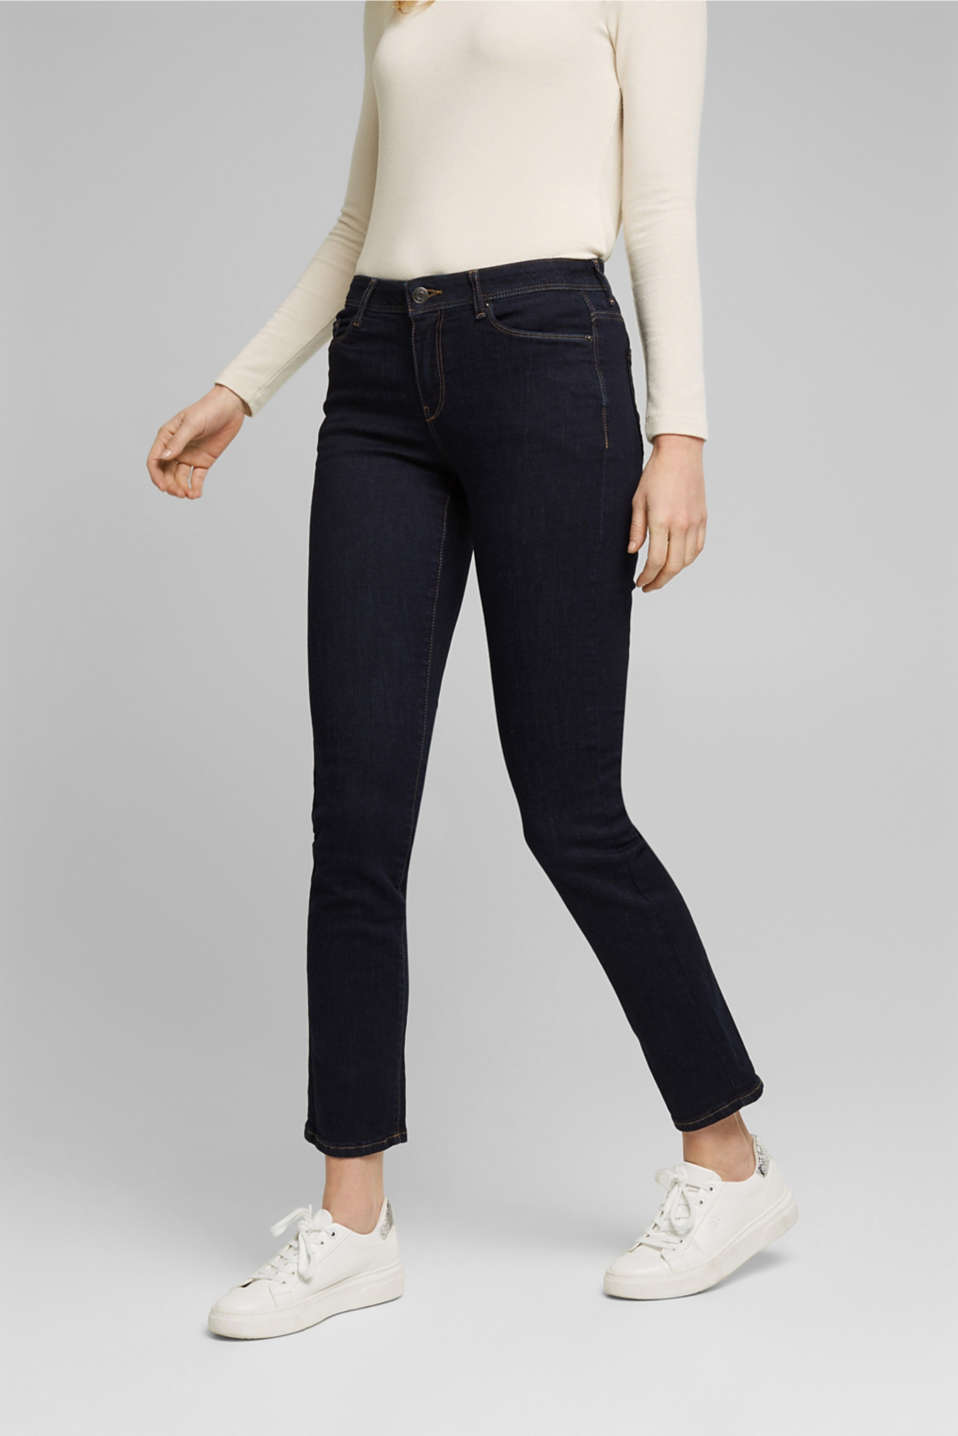 Esprit - Super stretch jeans made of organic cotton